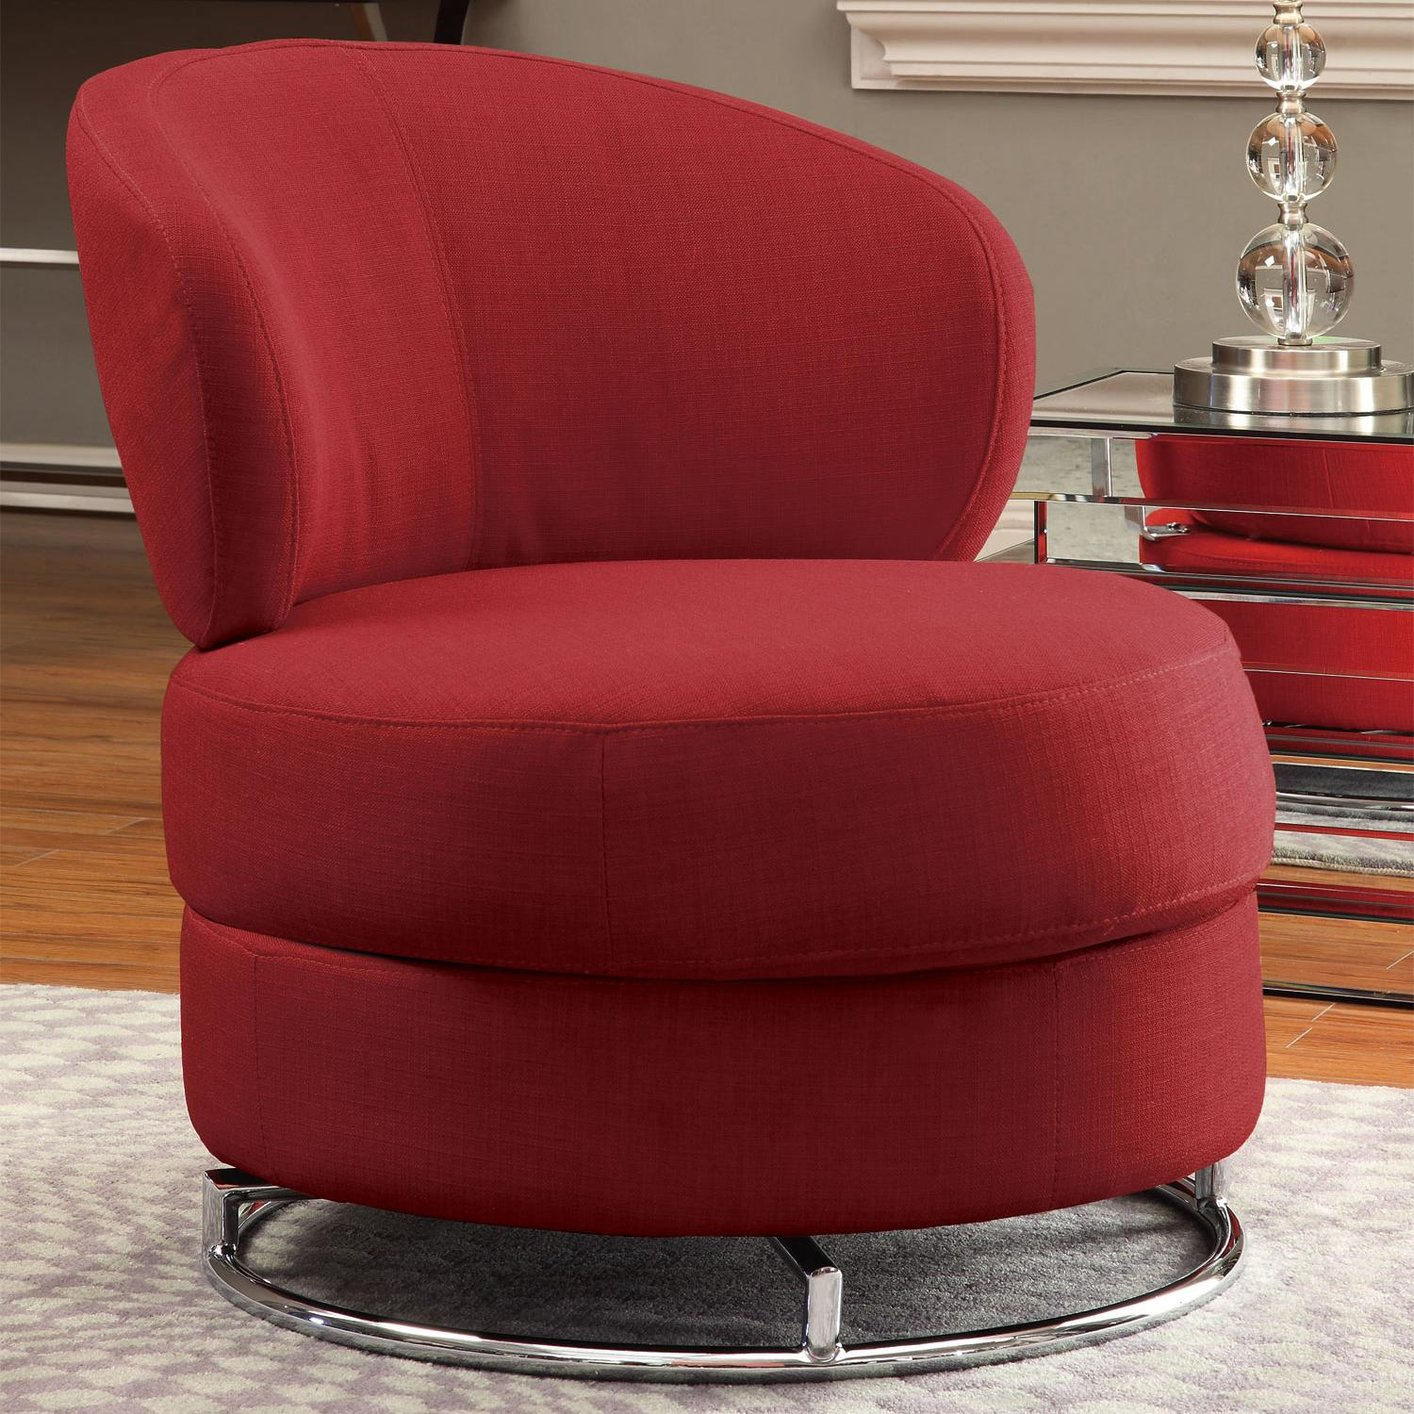 Red Fabric Swivel Chair Steal A Sofa Furniture Outlet